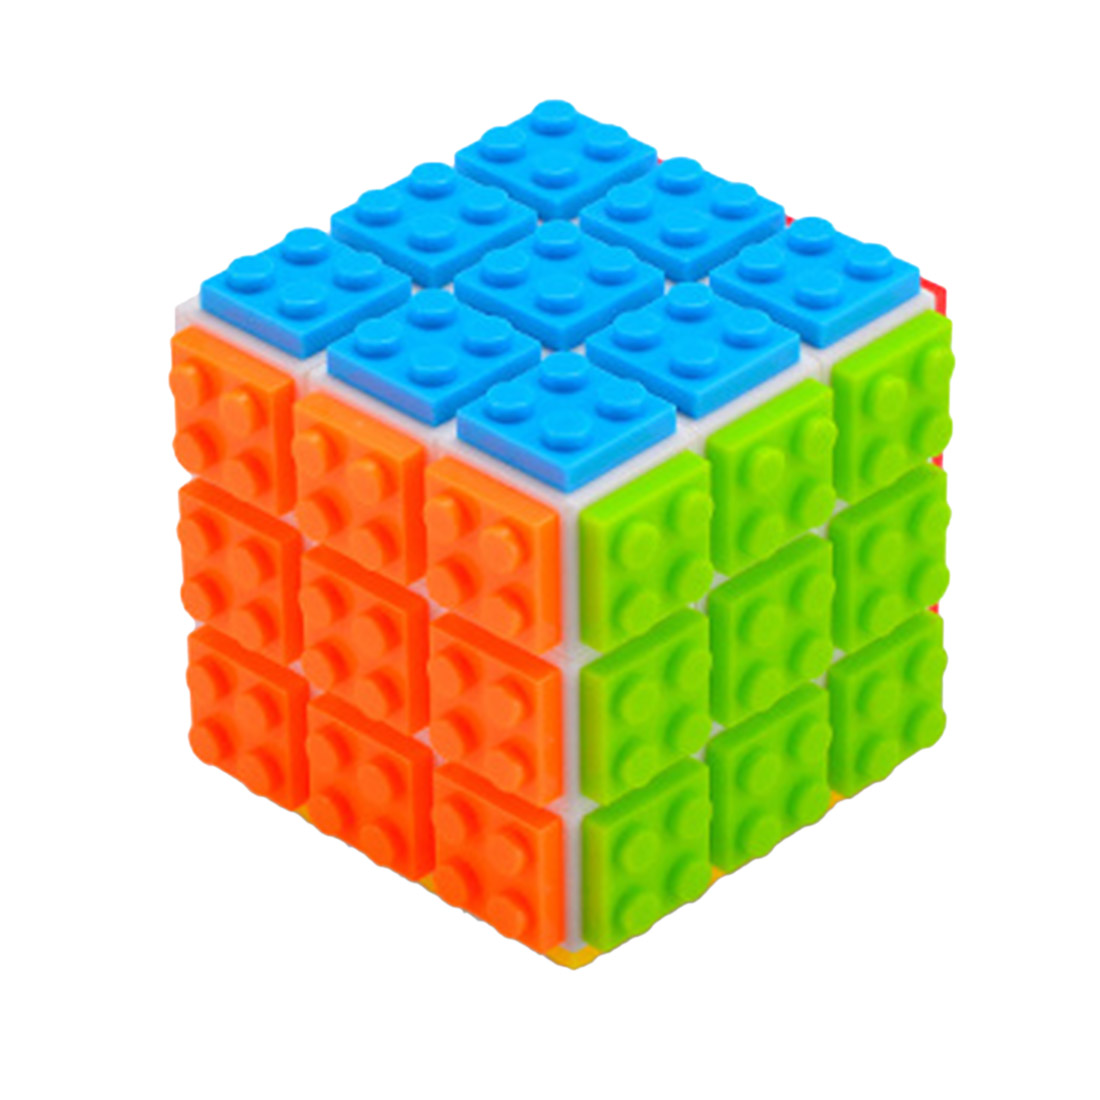 FanXin 3x3 Magic Cube Square Block Cube Puzzle Toy For Brain Training